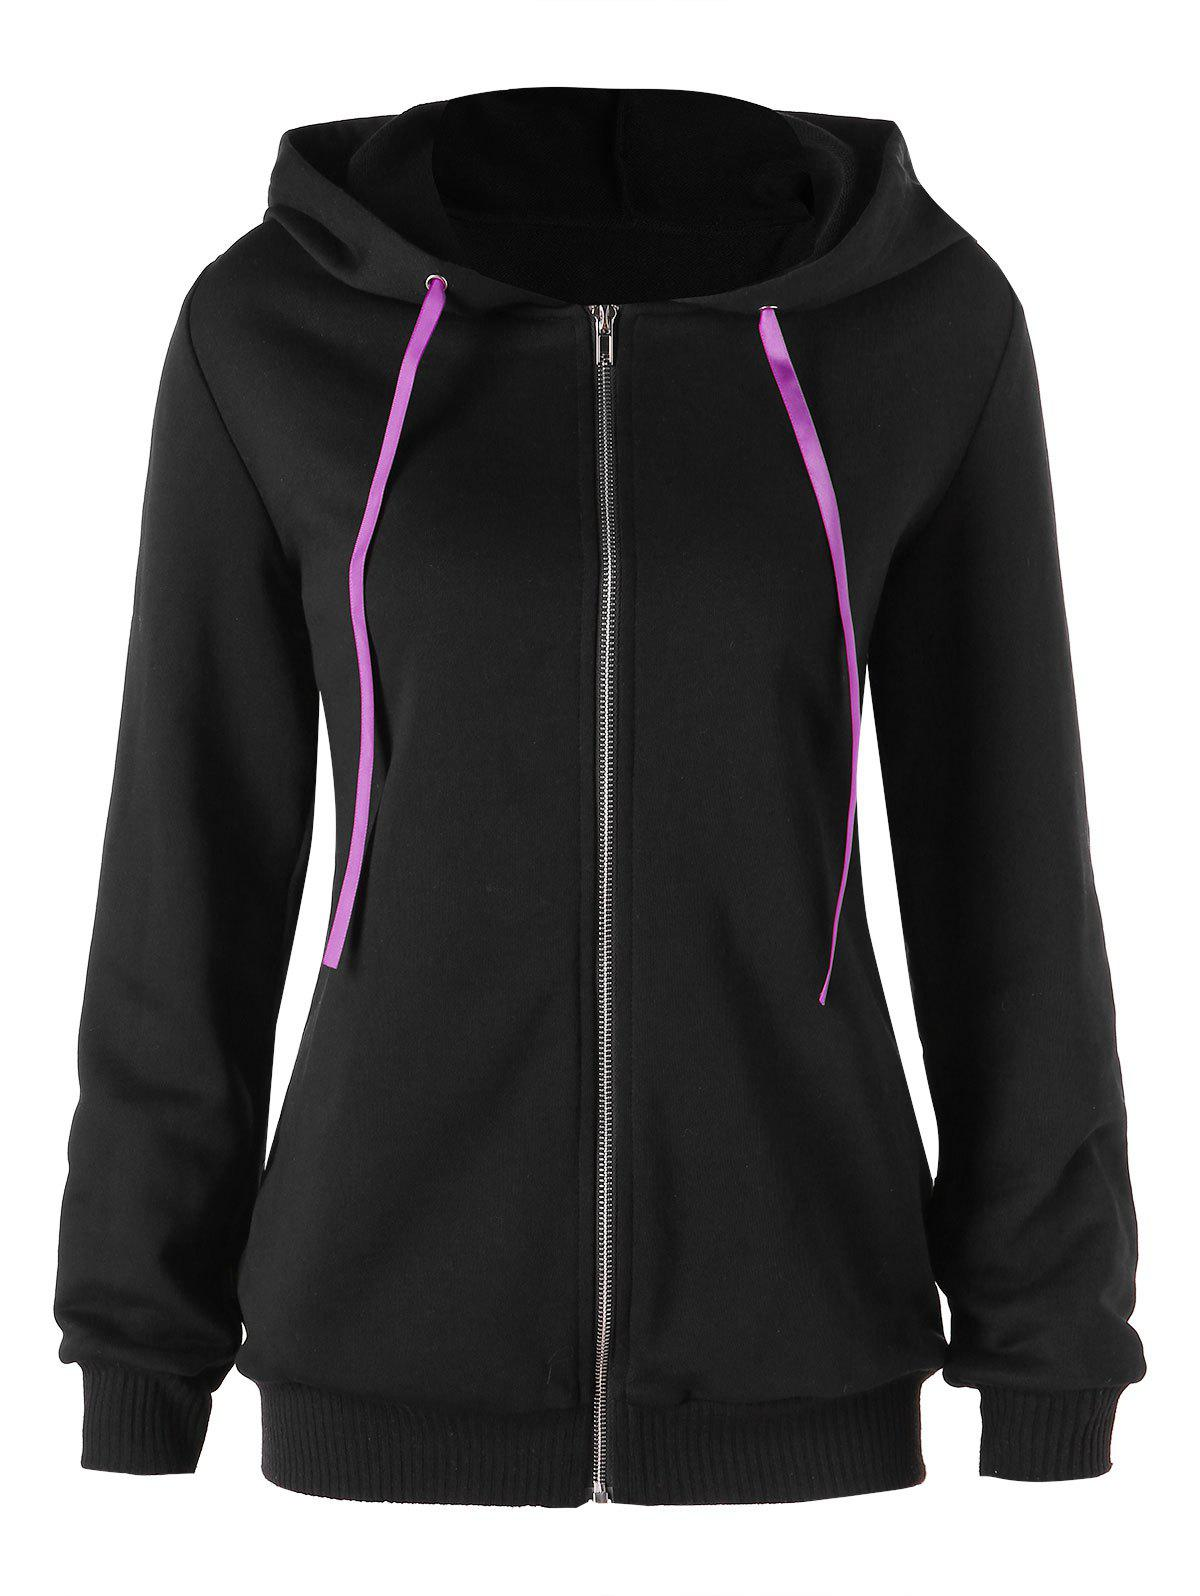 Chic Contrast Lace Up Zip Up Hoodie